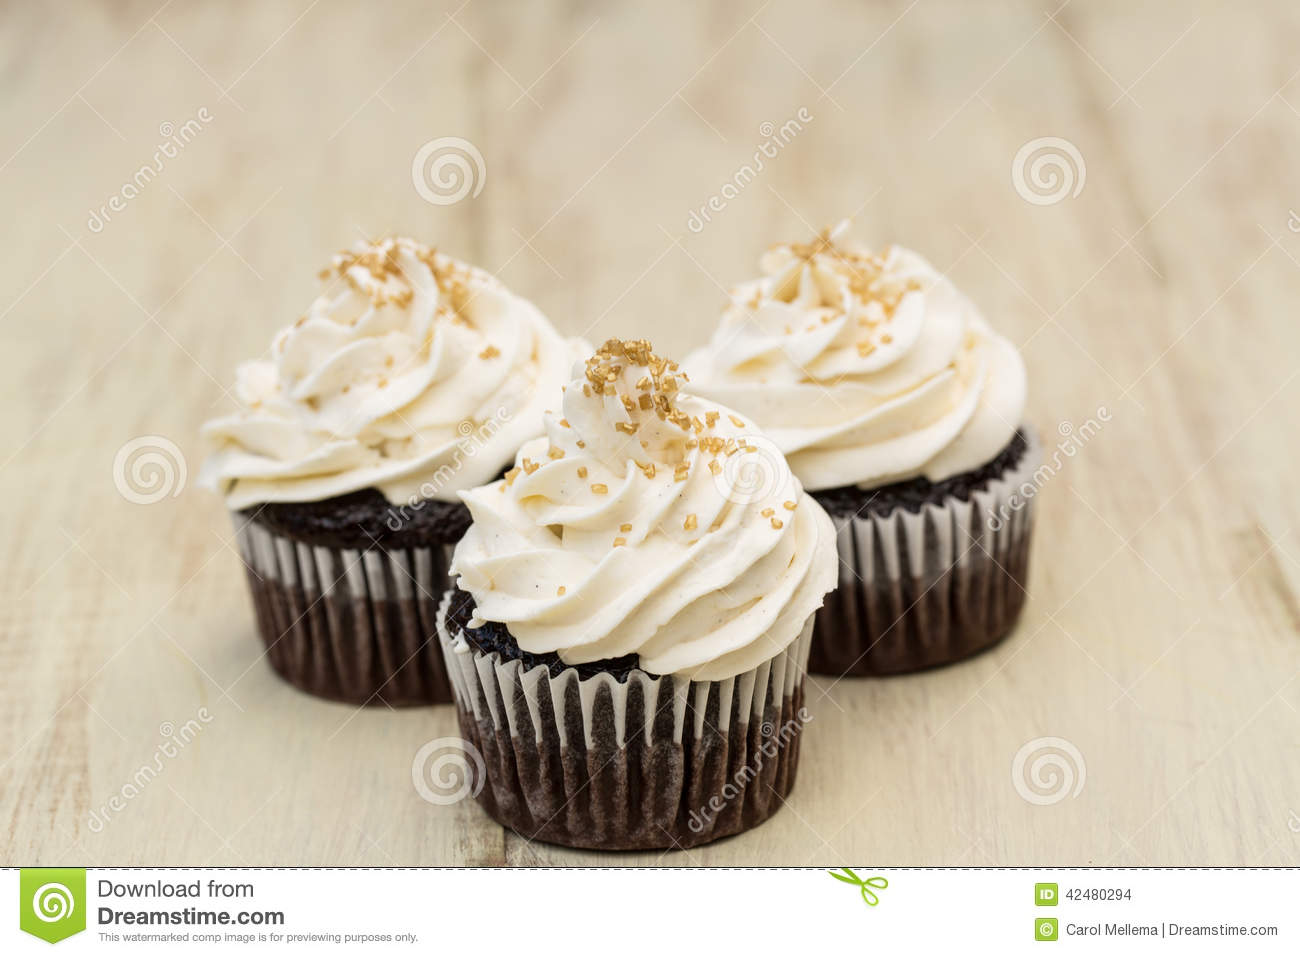 Chocolate Cupcakes With White Icing And Gold Sprinkles Stock Photo ...